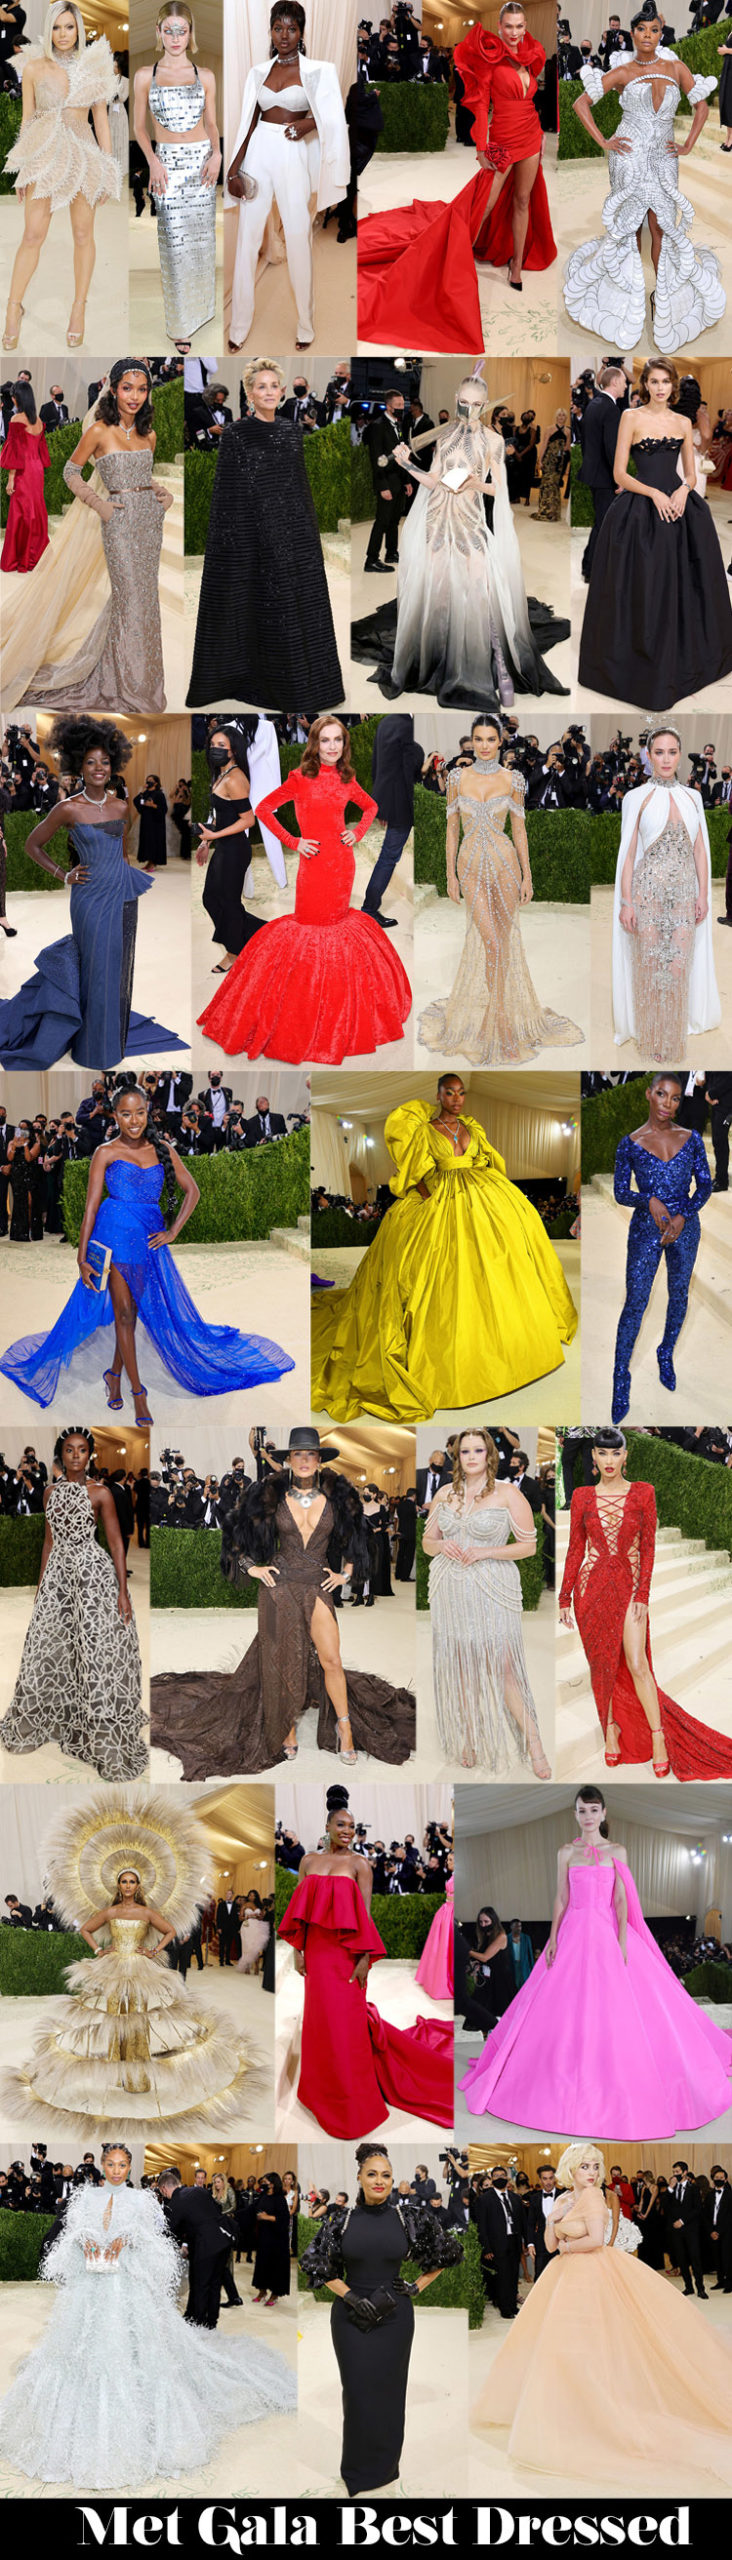 Who Was Your Best Dressed At The 2021 Met Gala?